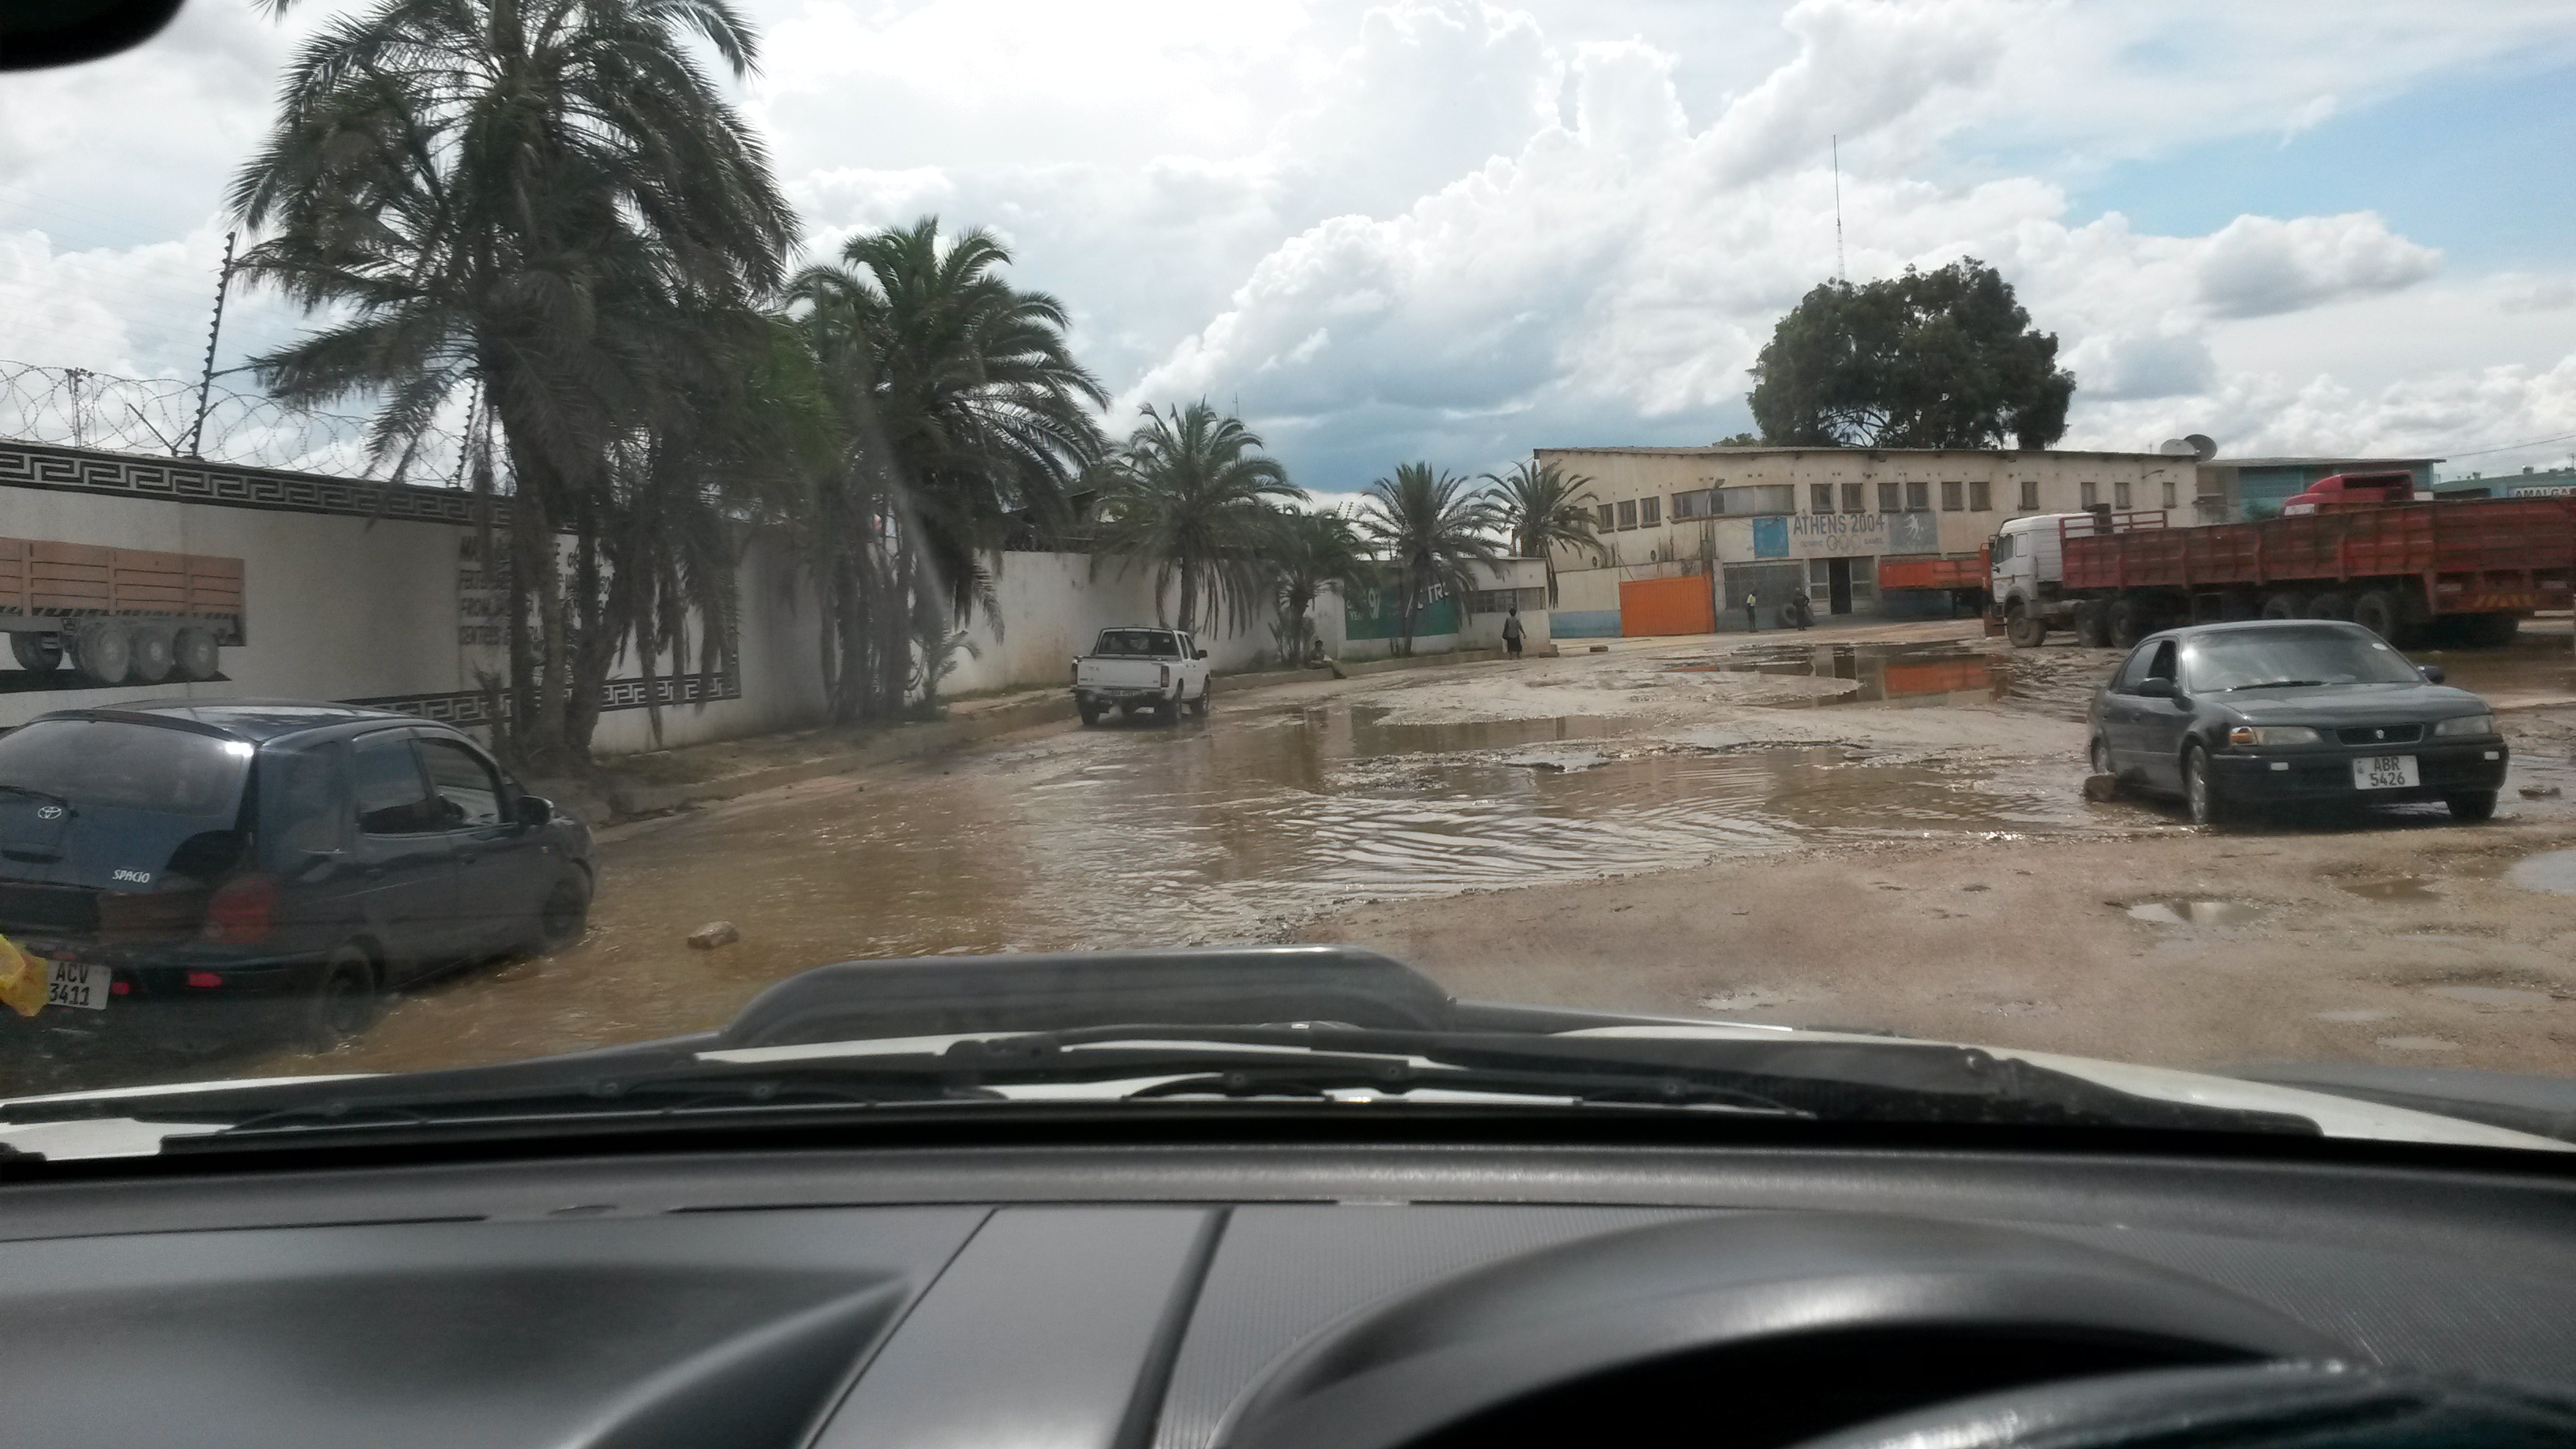 Roads in Industrial Area of Lusaka